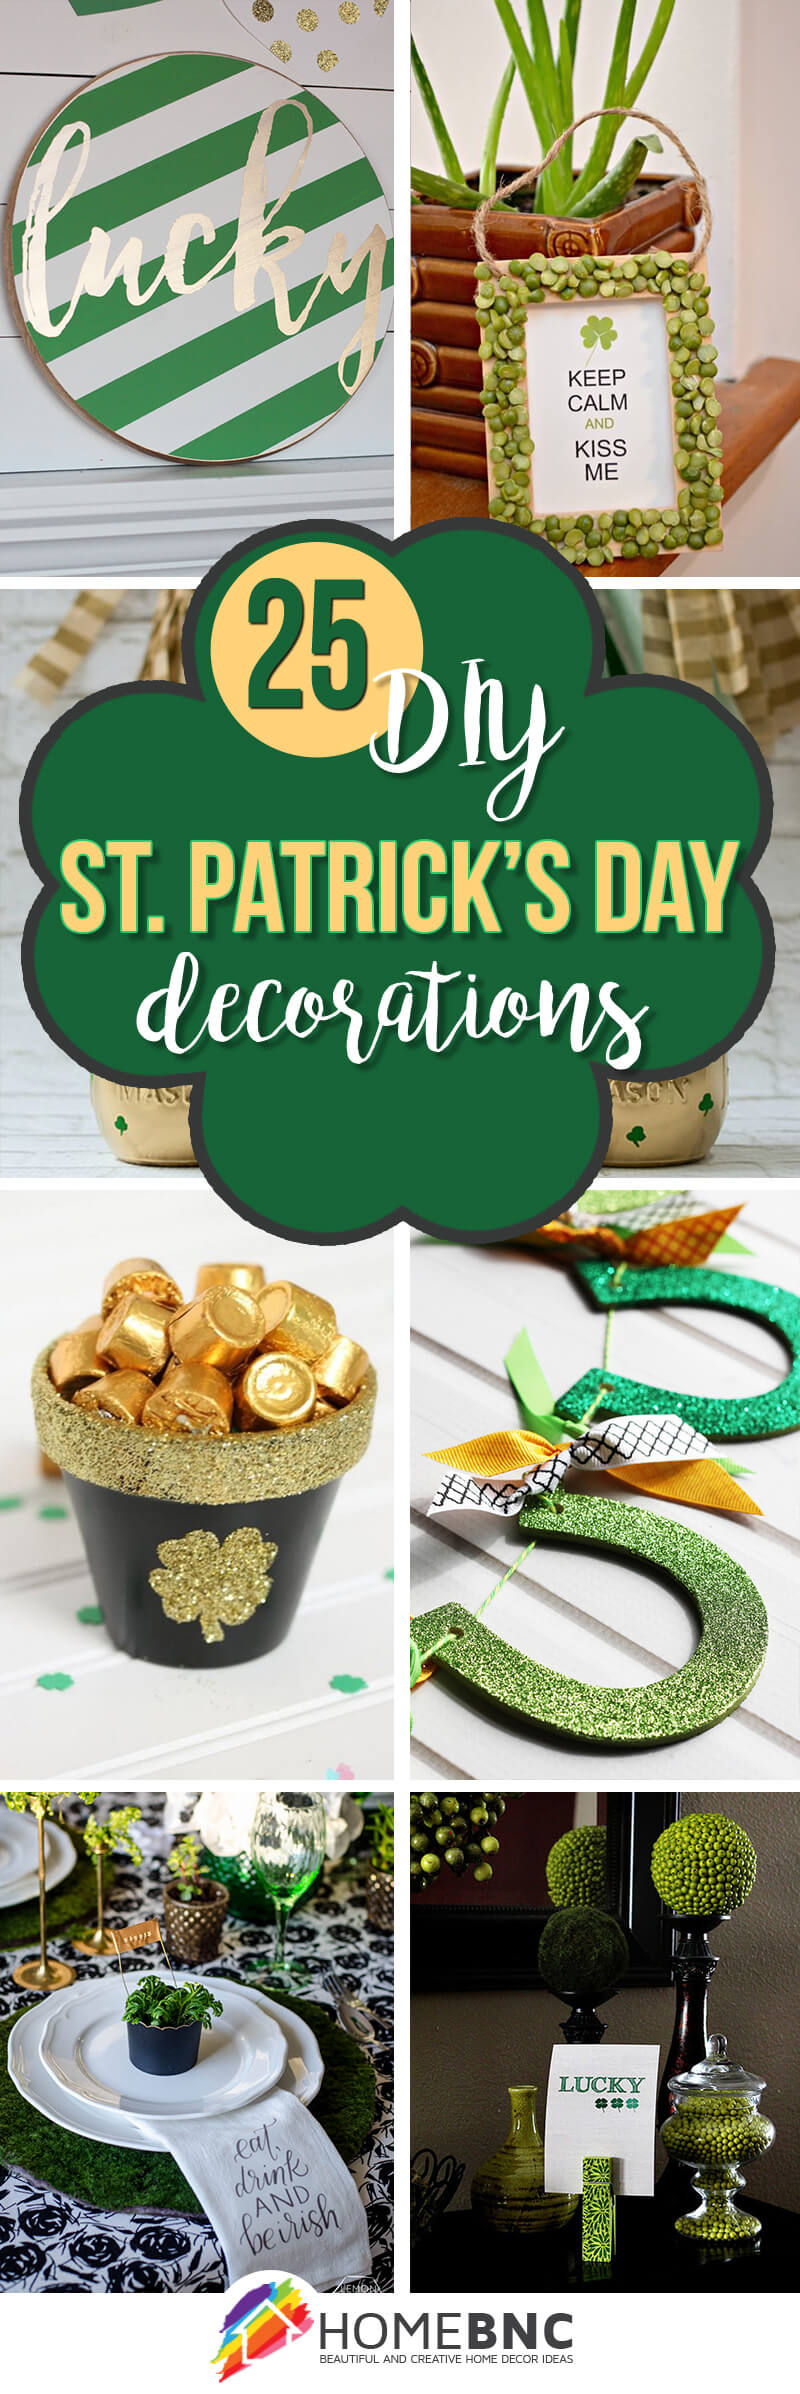 25 Best DIY St. Patrick\'s Day Decorations and Ideas for 2019